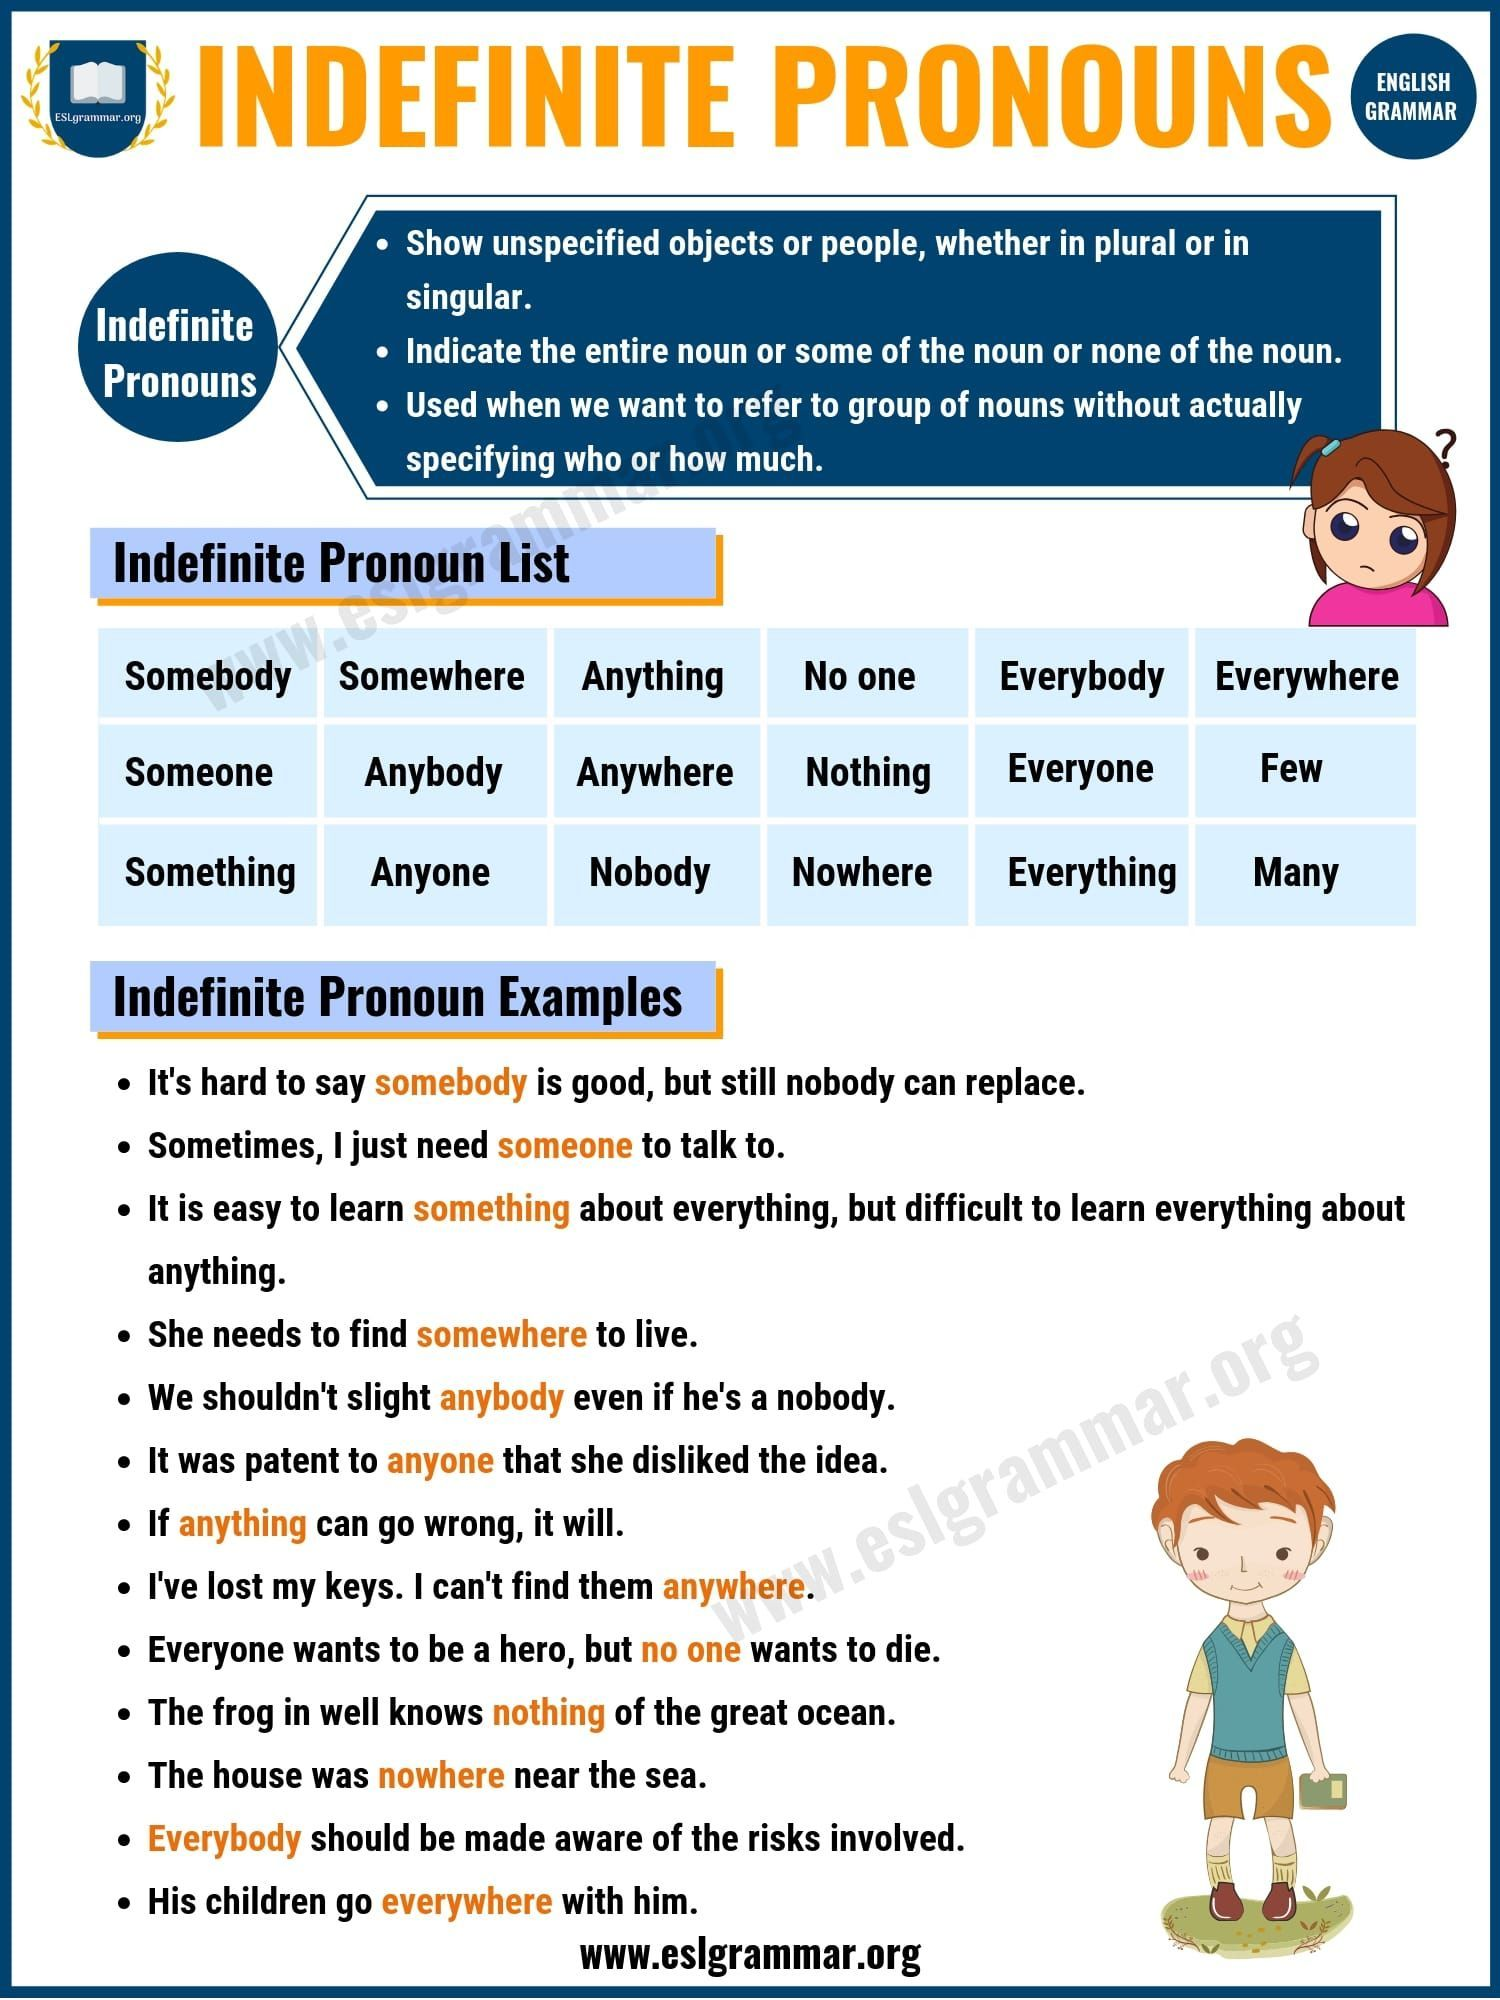 Indefinite Pronouns Definition Useful Rules List Examples Esl Grammar In 2020 Indefinite Pronouns Pronoun Examples Pronoun [ 2000 x 1500 Pixel ]